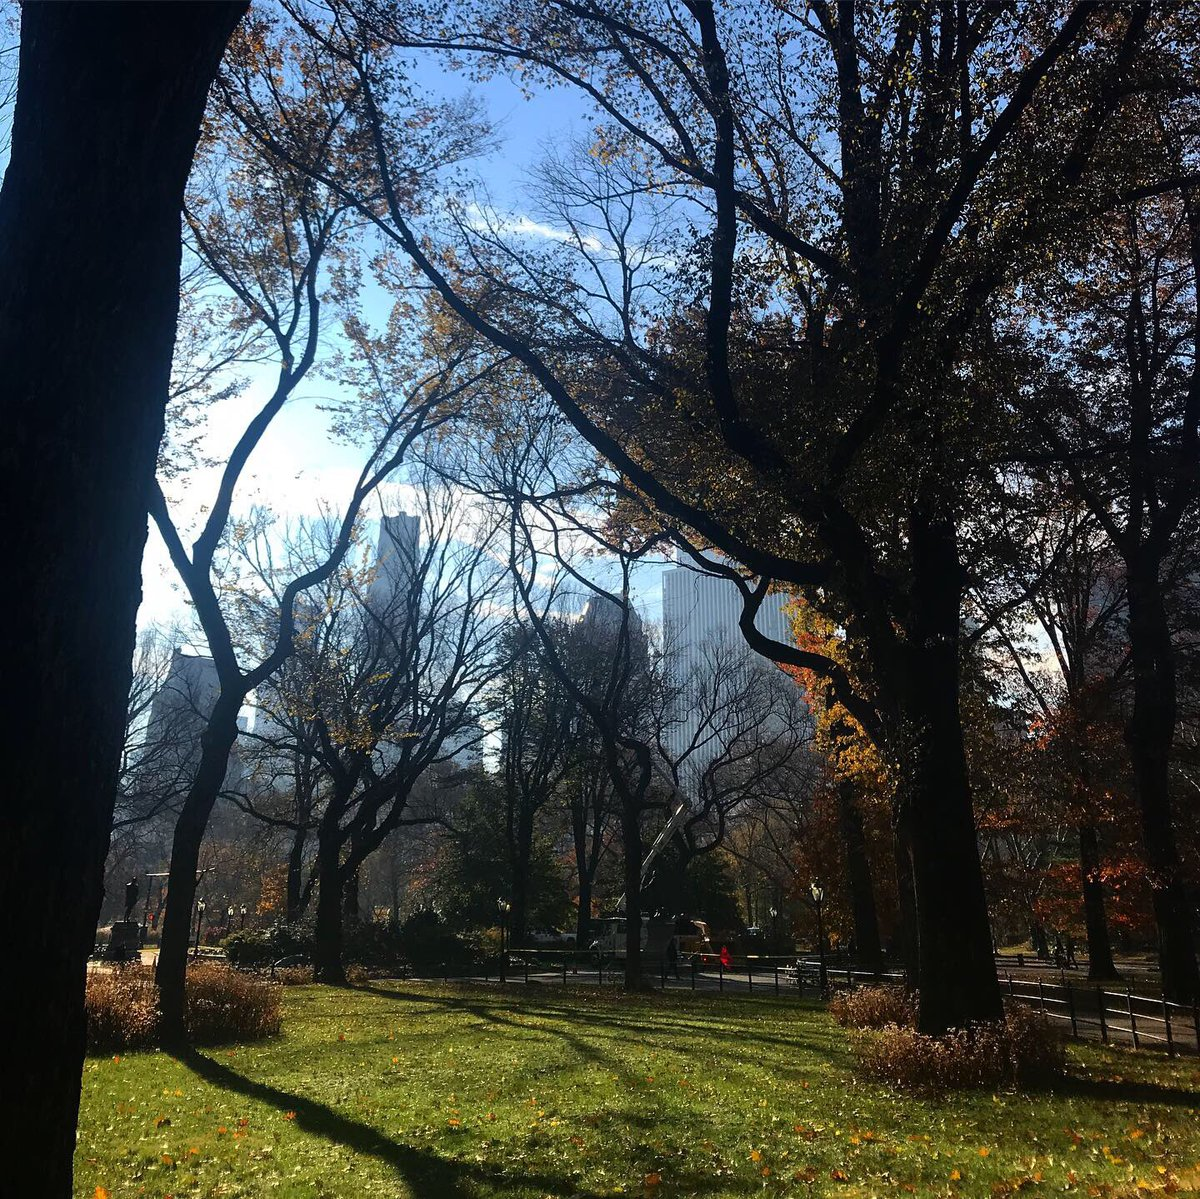 Walk, snap. Walk, snap. Hard not to take pic after pic - there's just so much beautiful on this no-coat-needed November Monday!      * * #centralpark #autumninnewyork #nycphoto #thanksgivingweek #thanksgivinginnyc #novemberweather #travelnyc #travel #outdoorfunpic.twitter.com/Z2ffjXJIGE